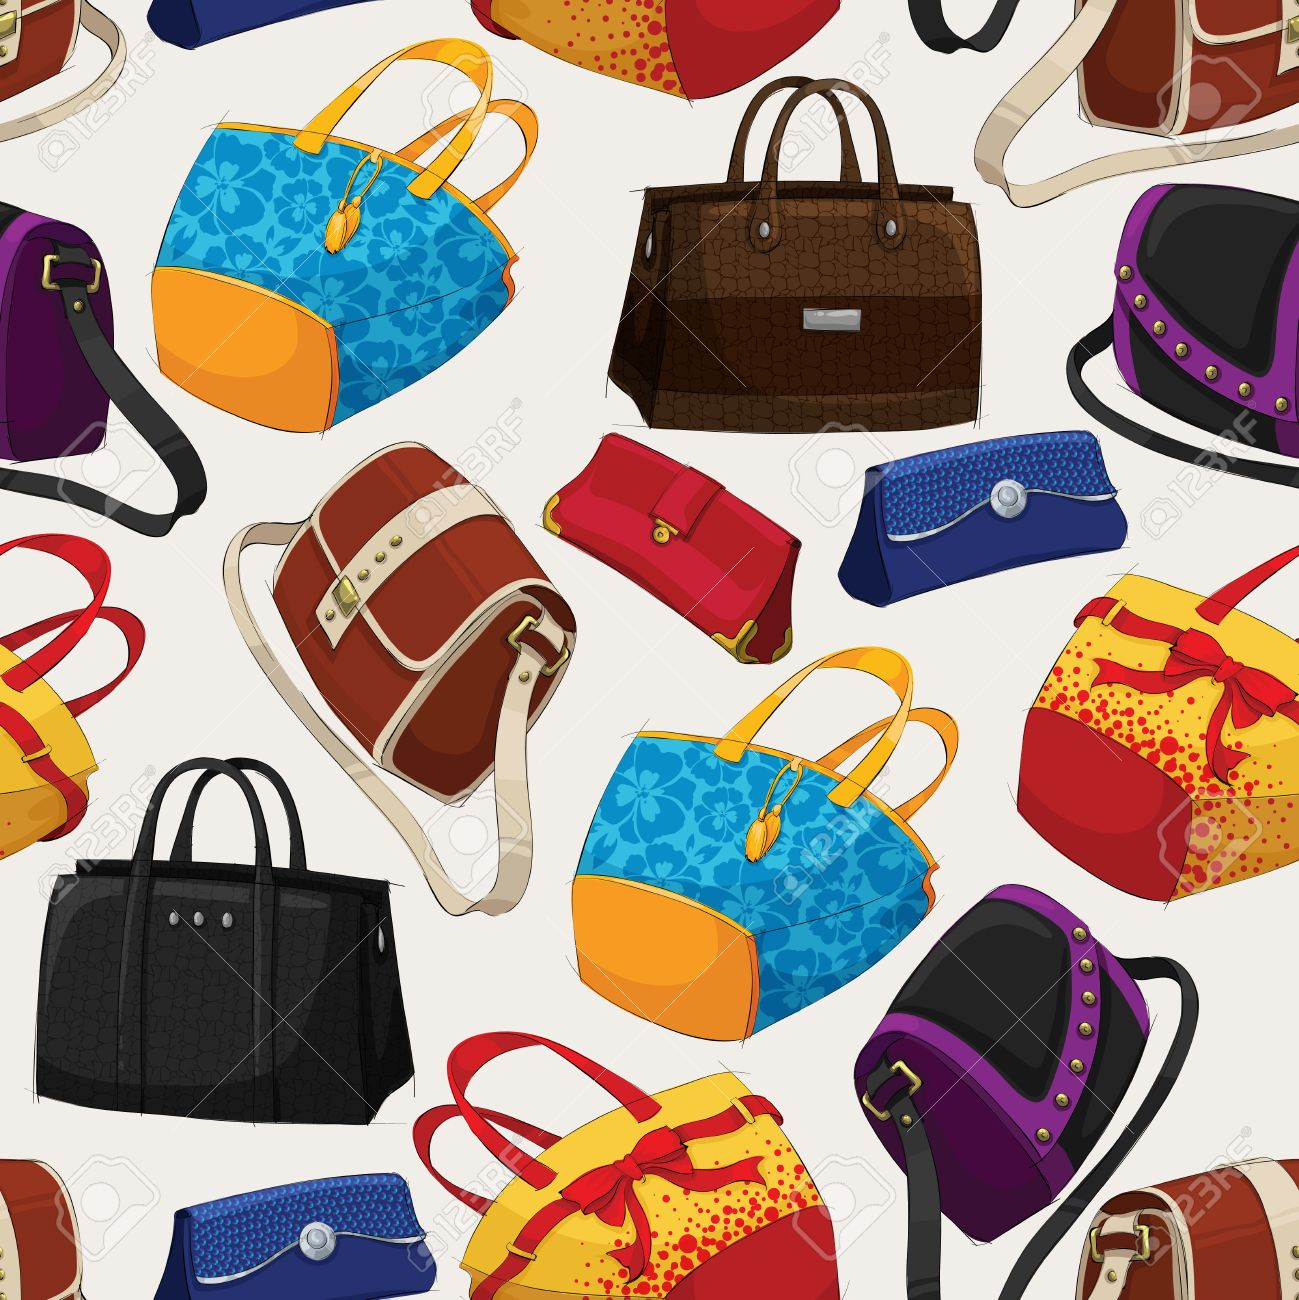 seamless woman s fashion bags pattern background illustration